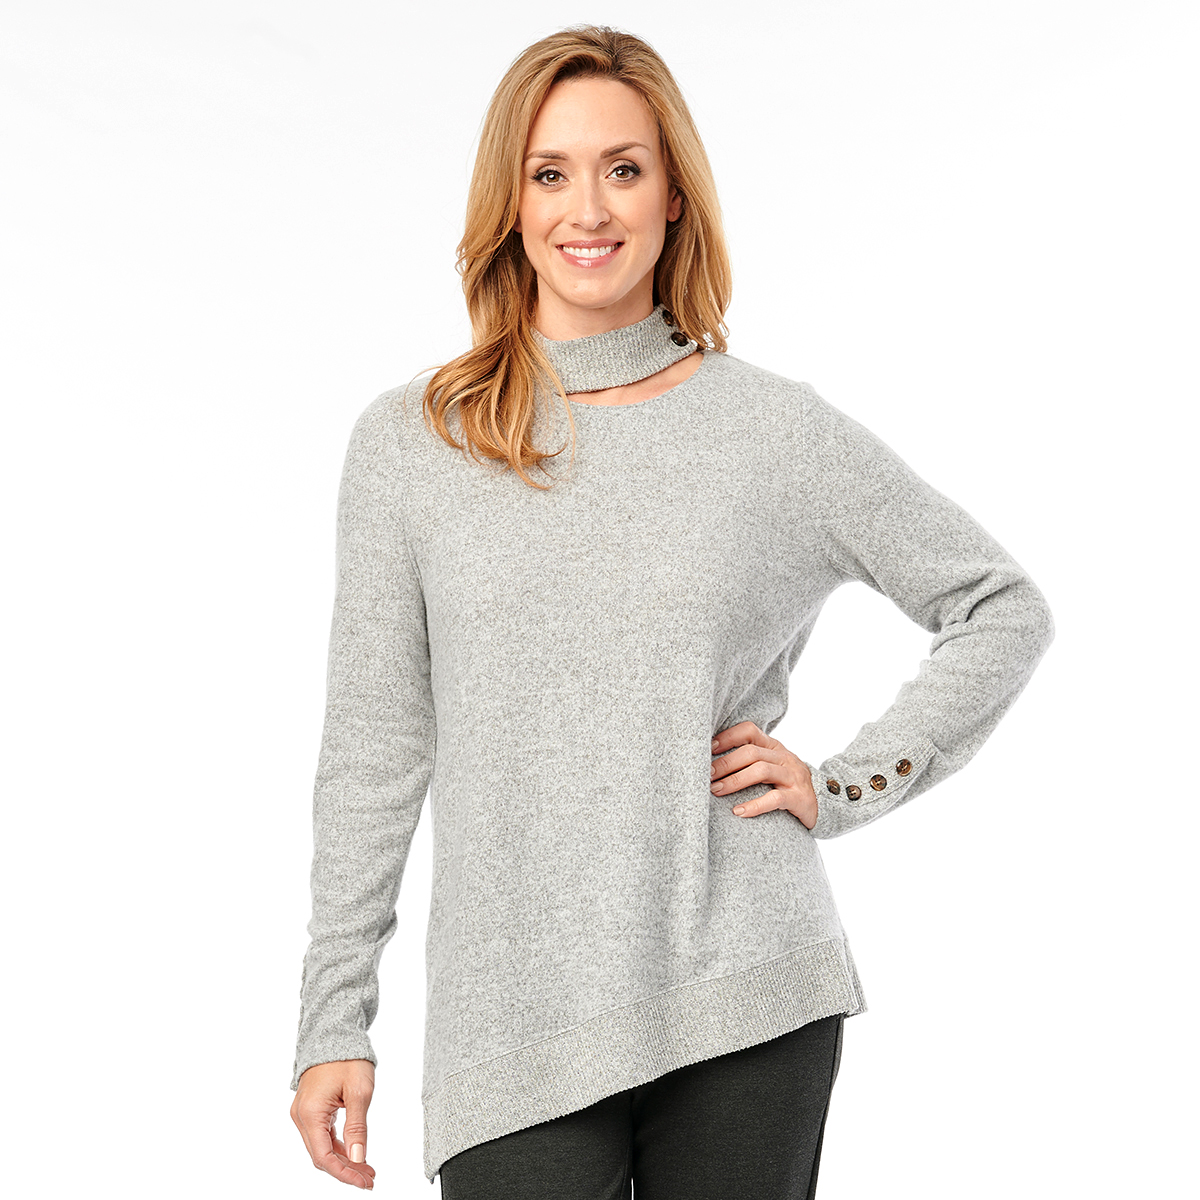 https://www.boscovs.com/shop/prod/democracy-cutout-mock-neck-button-detailed-long-sleeve-sweater/184017.htm